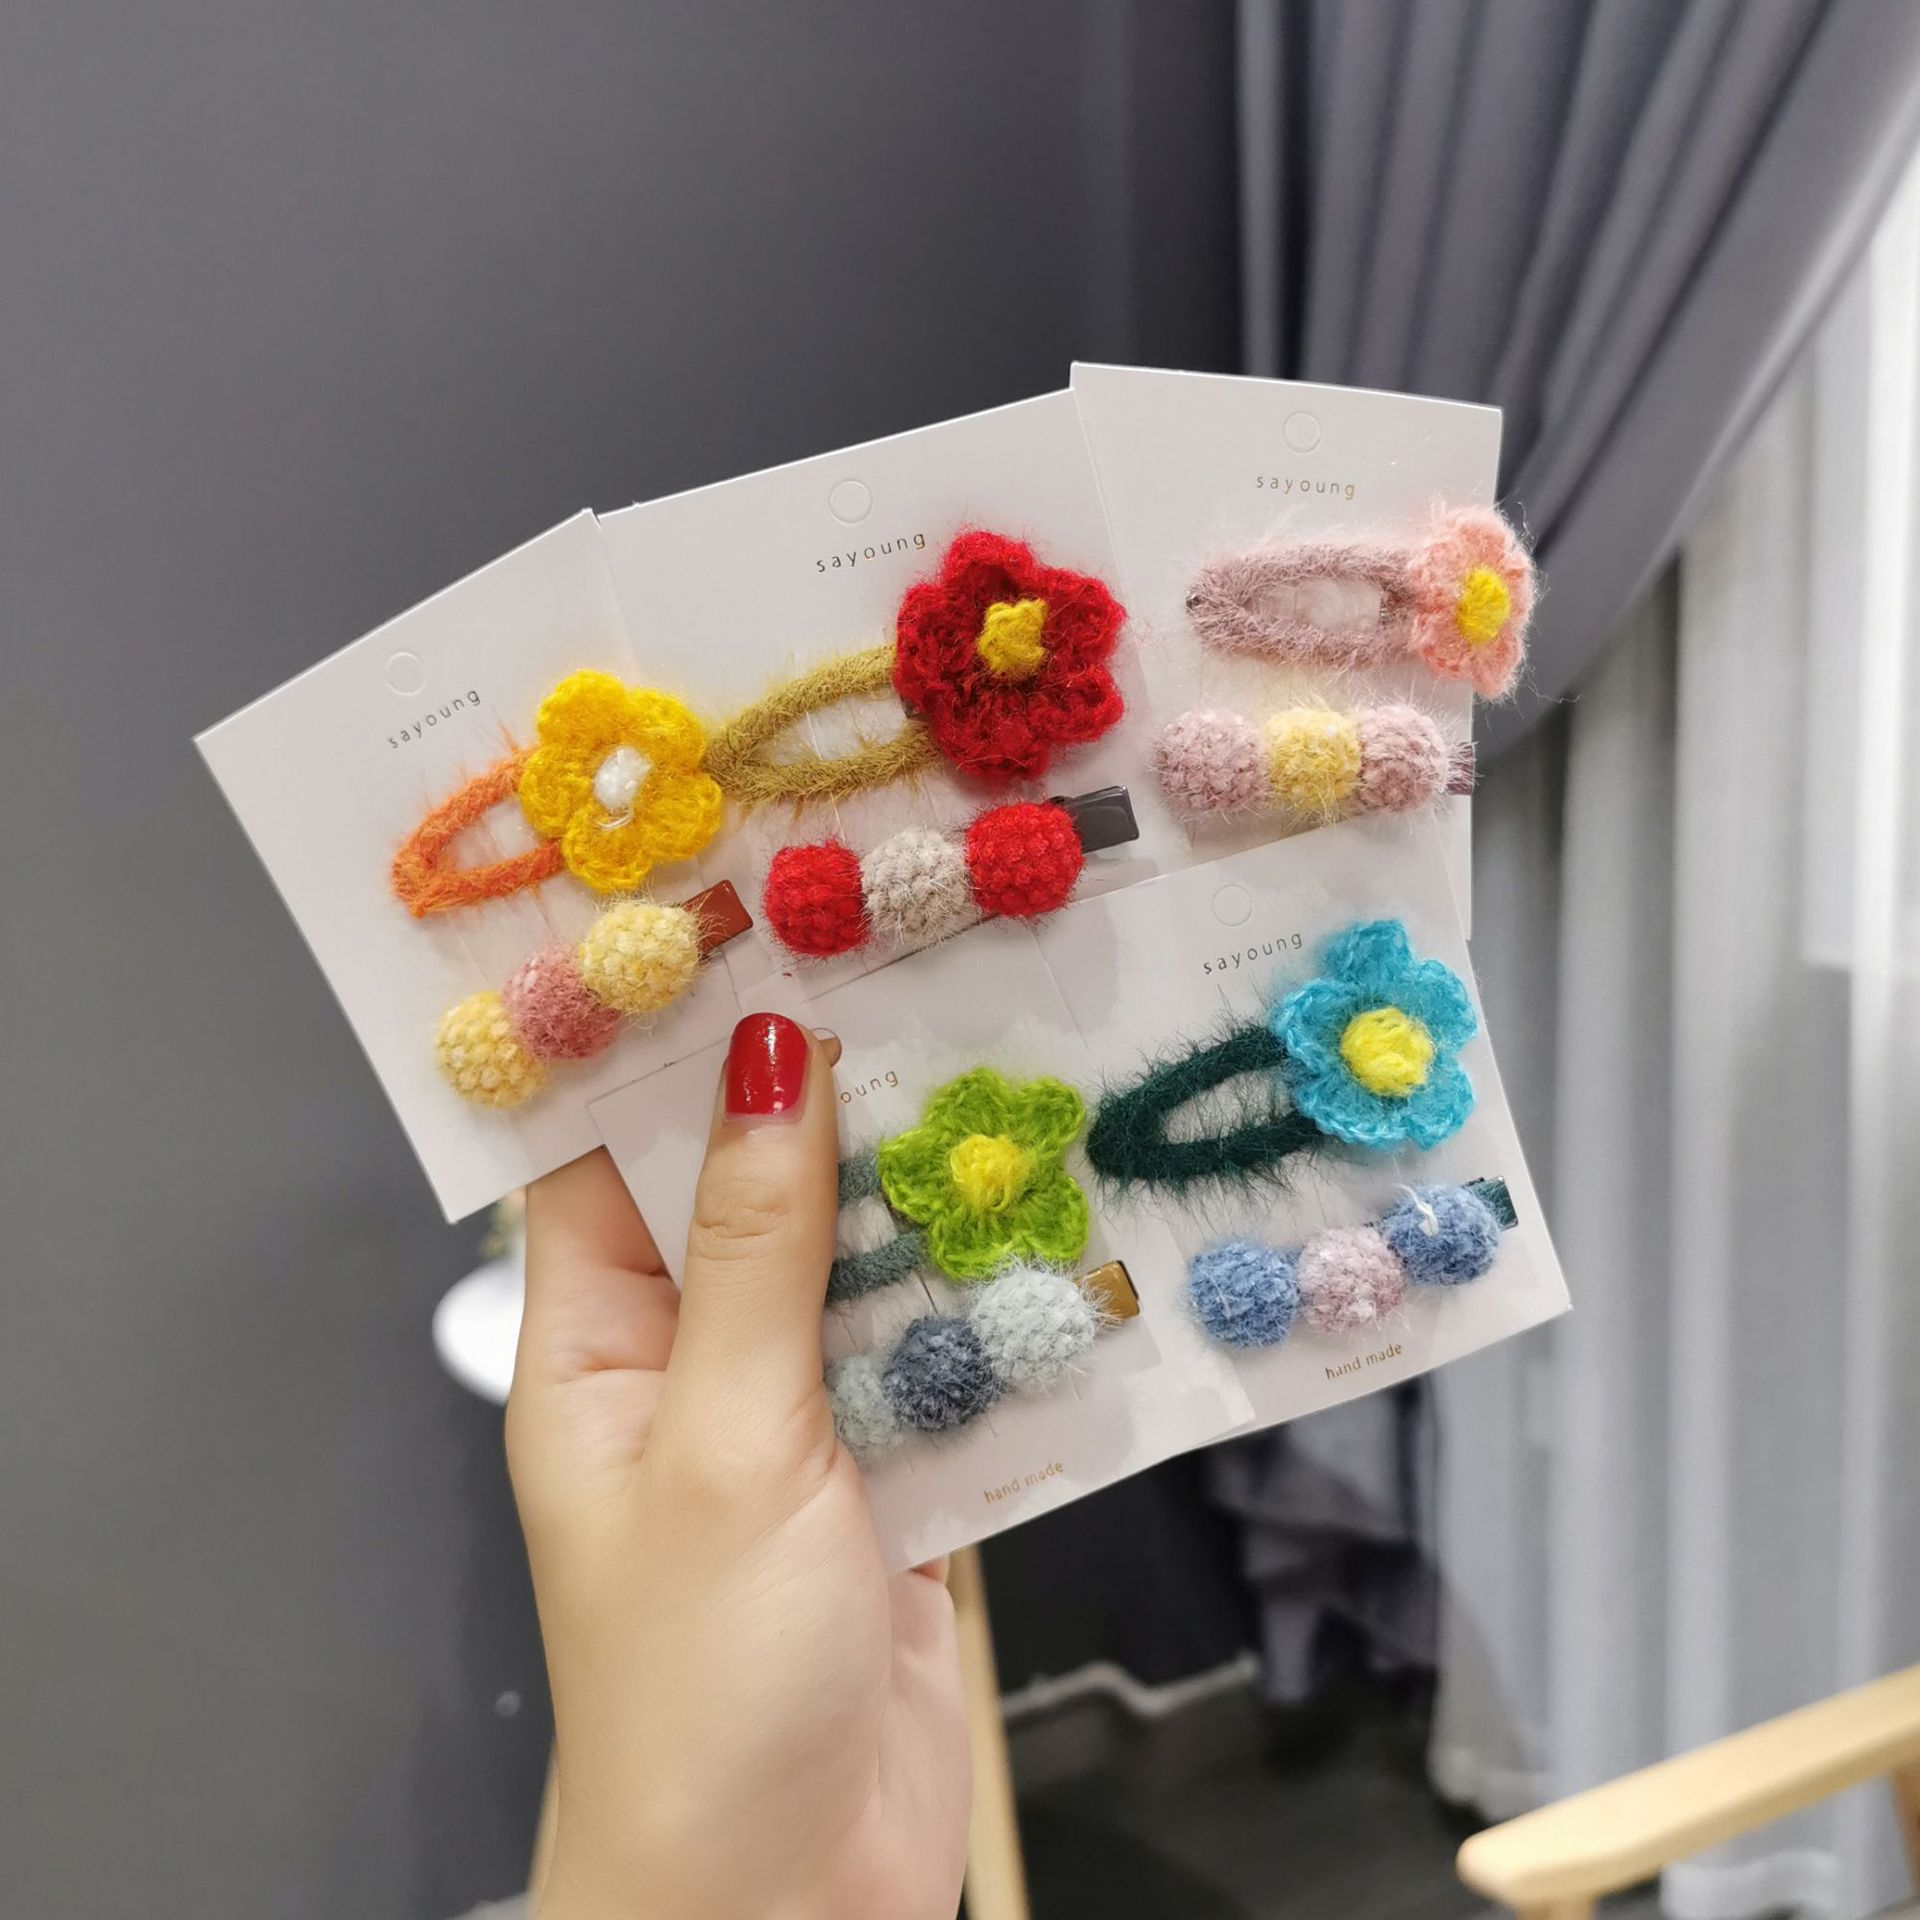 2 PC New Fashion Women Girls Hairpins Flower Hair Clip Delicate Pin Decorations Jewelry Accessories Beauty Styling Tools Dropshipping Arrival